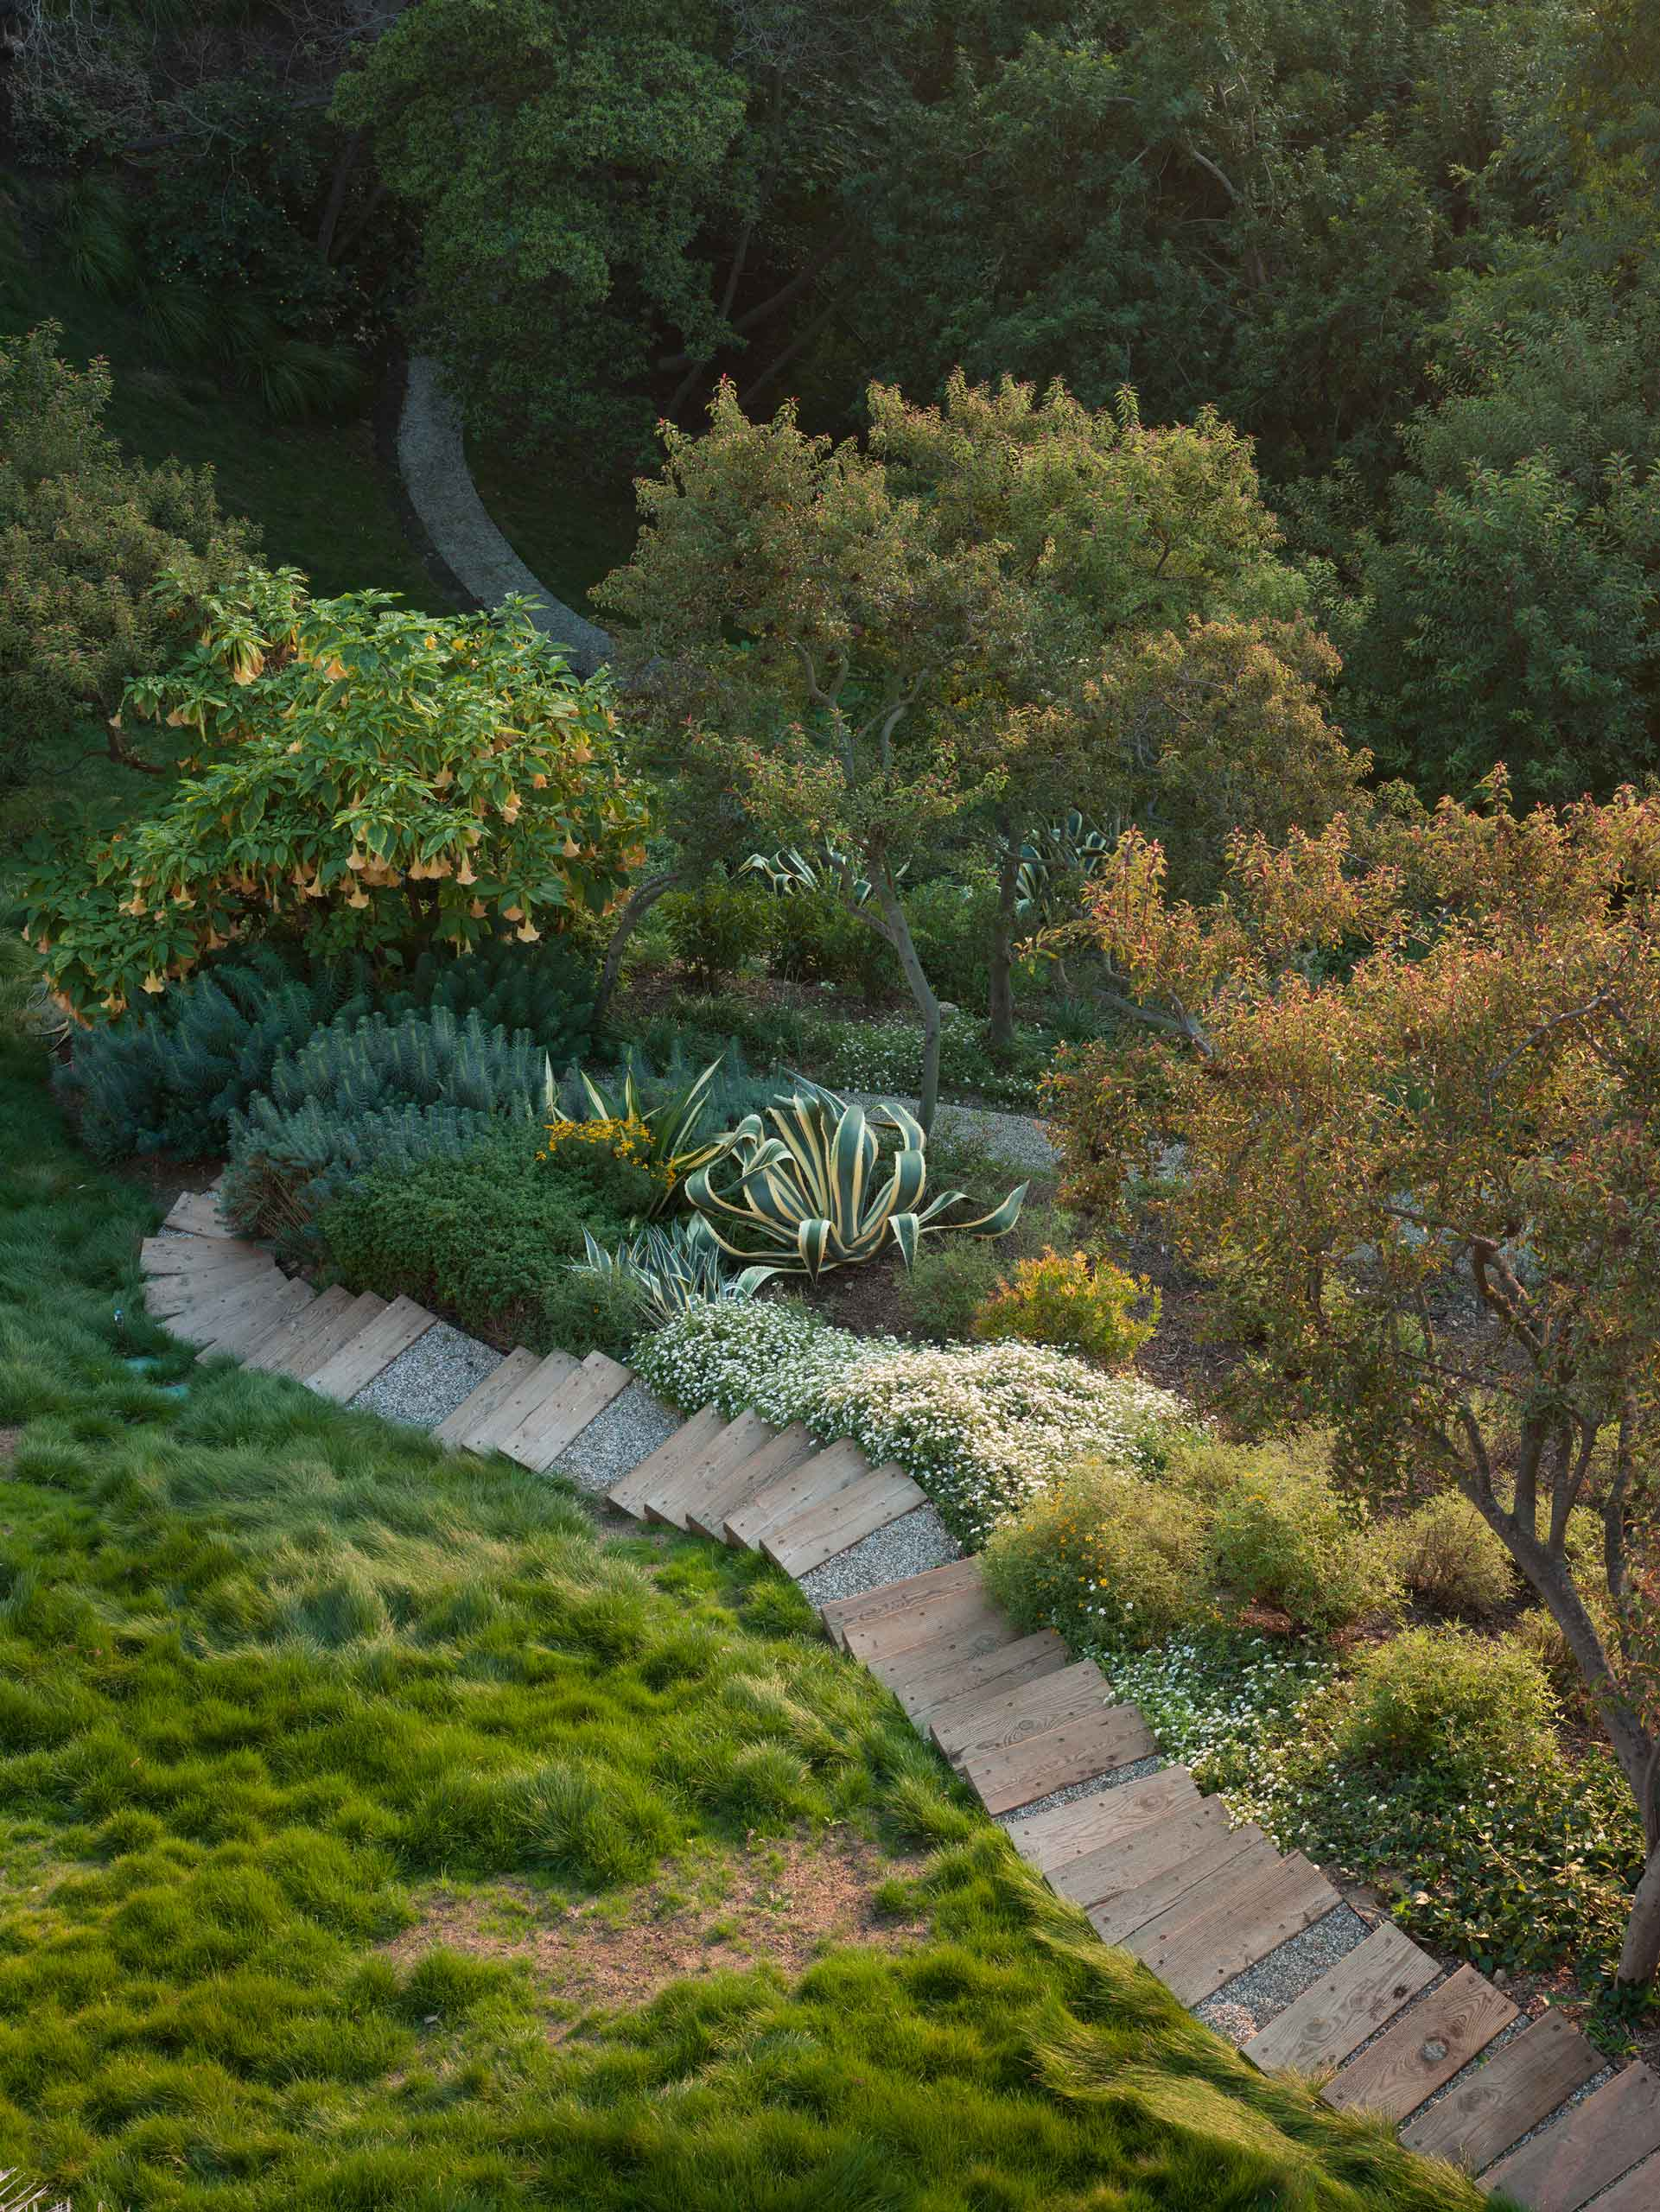 stepped path through garden with large agave